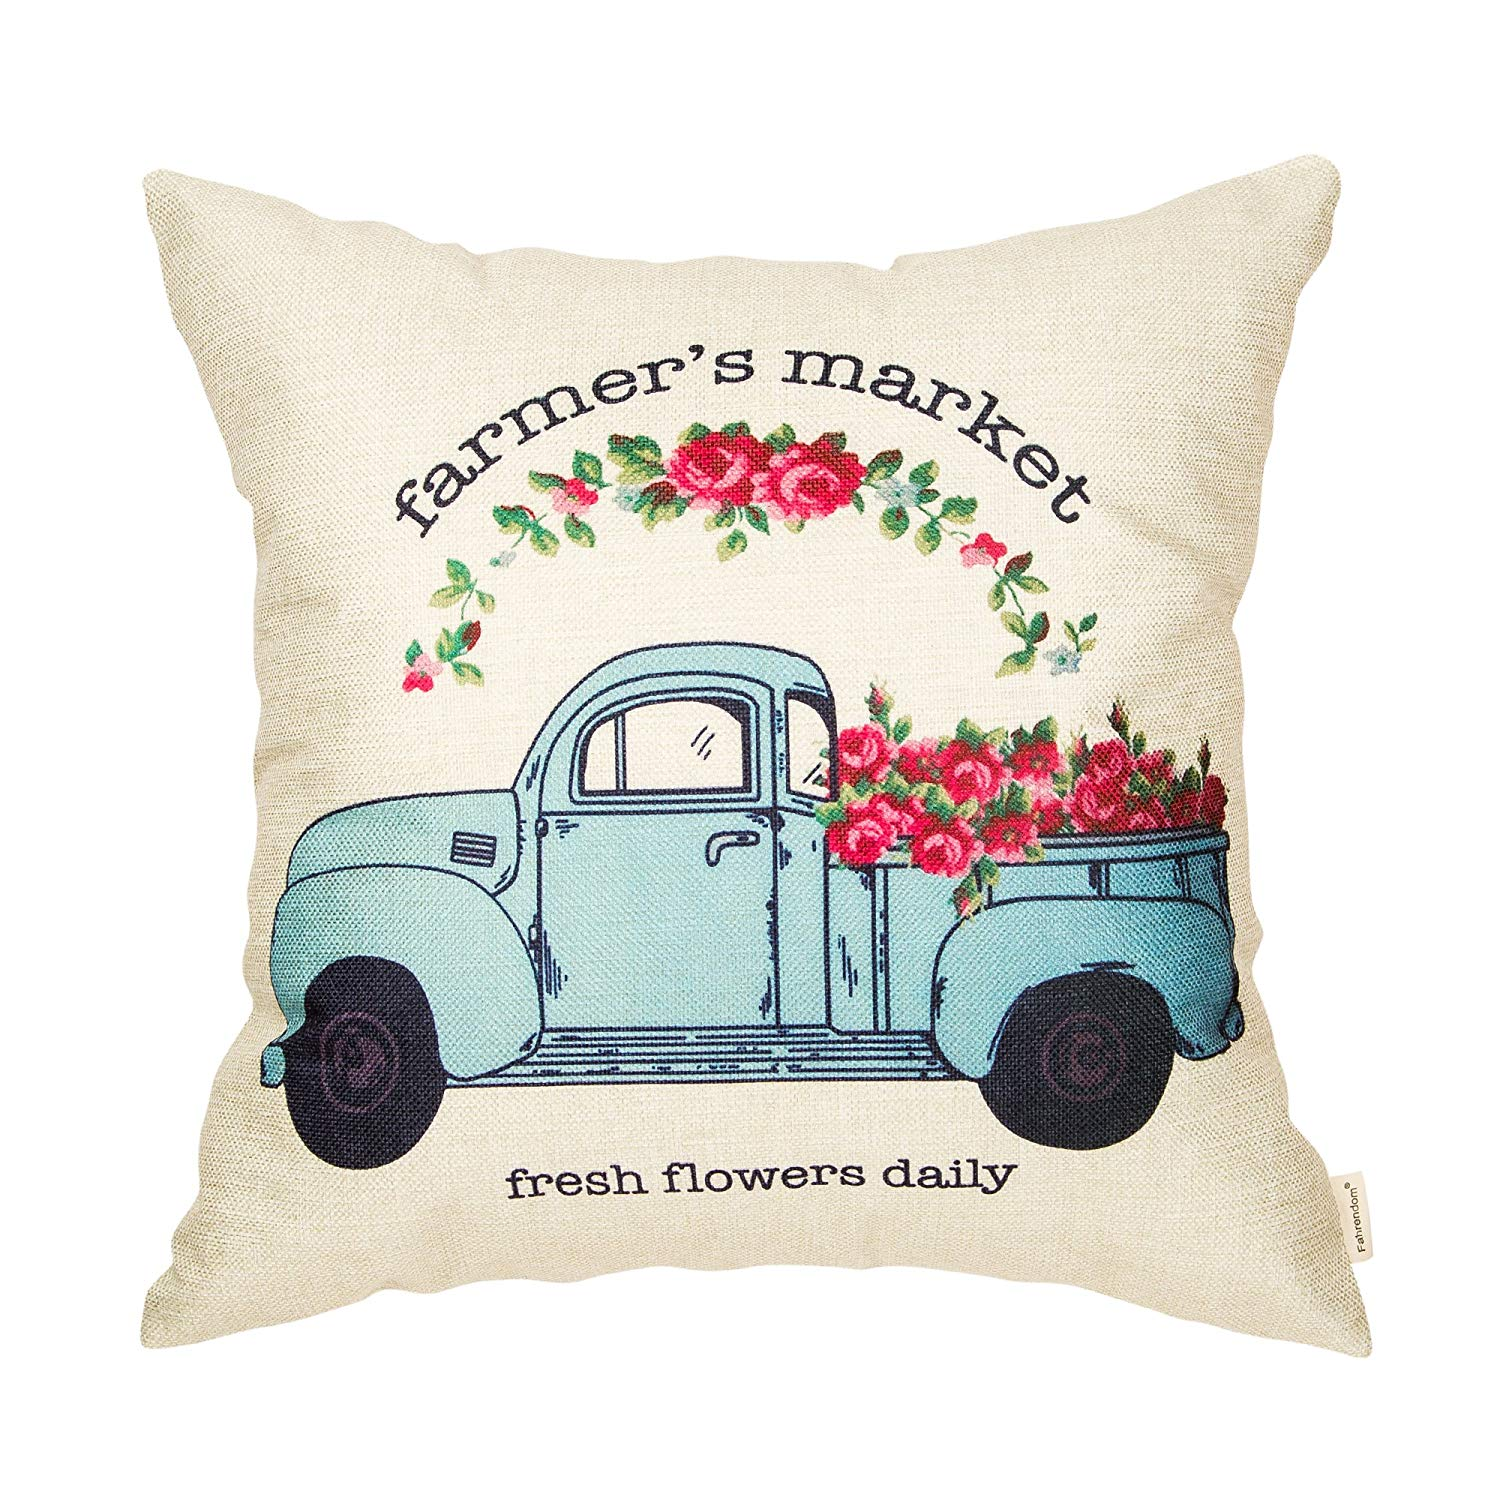 Farmer's Market farm truck with flowers spring floral pillow cover budget friendly home decor item affilaite link